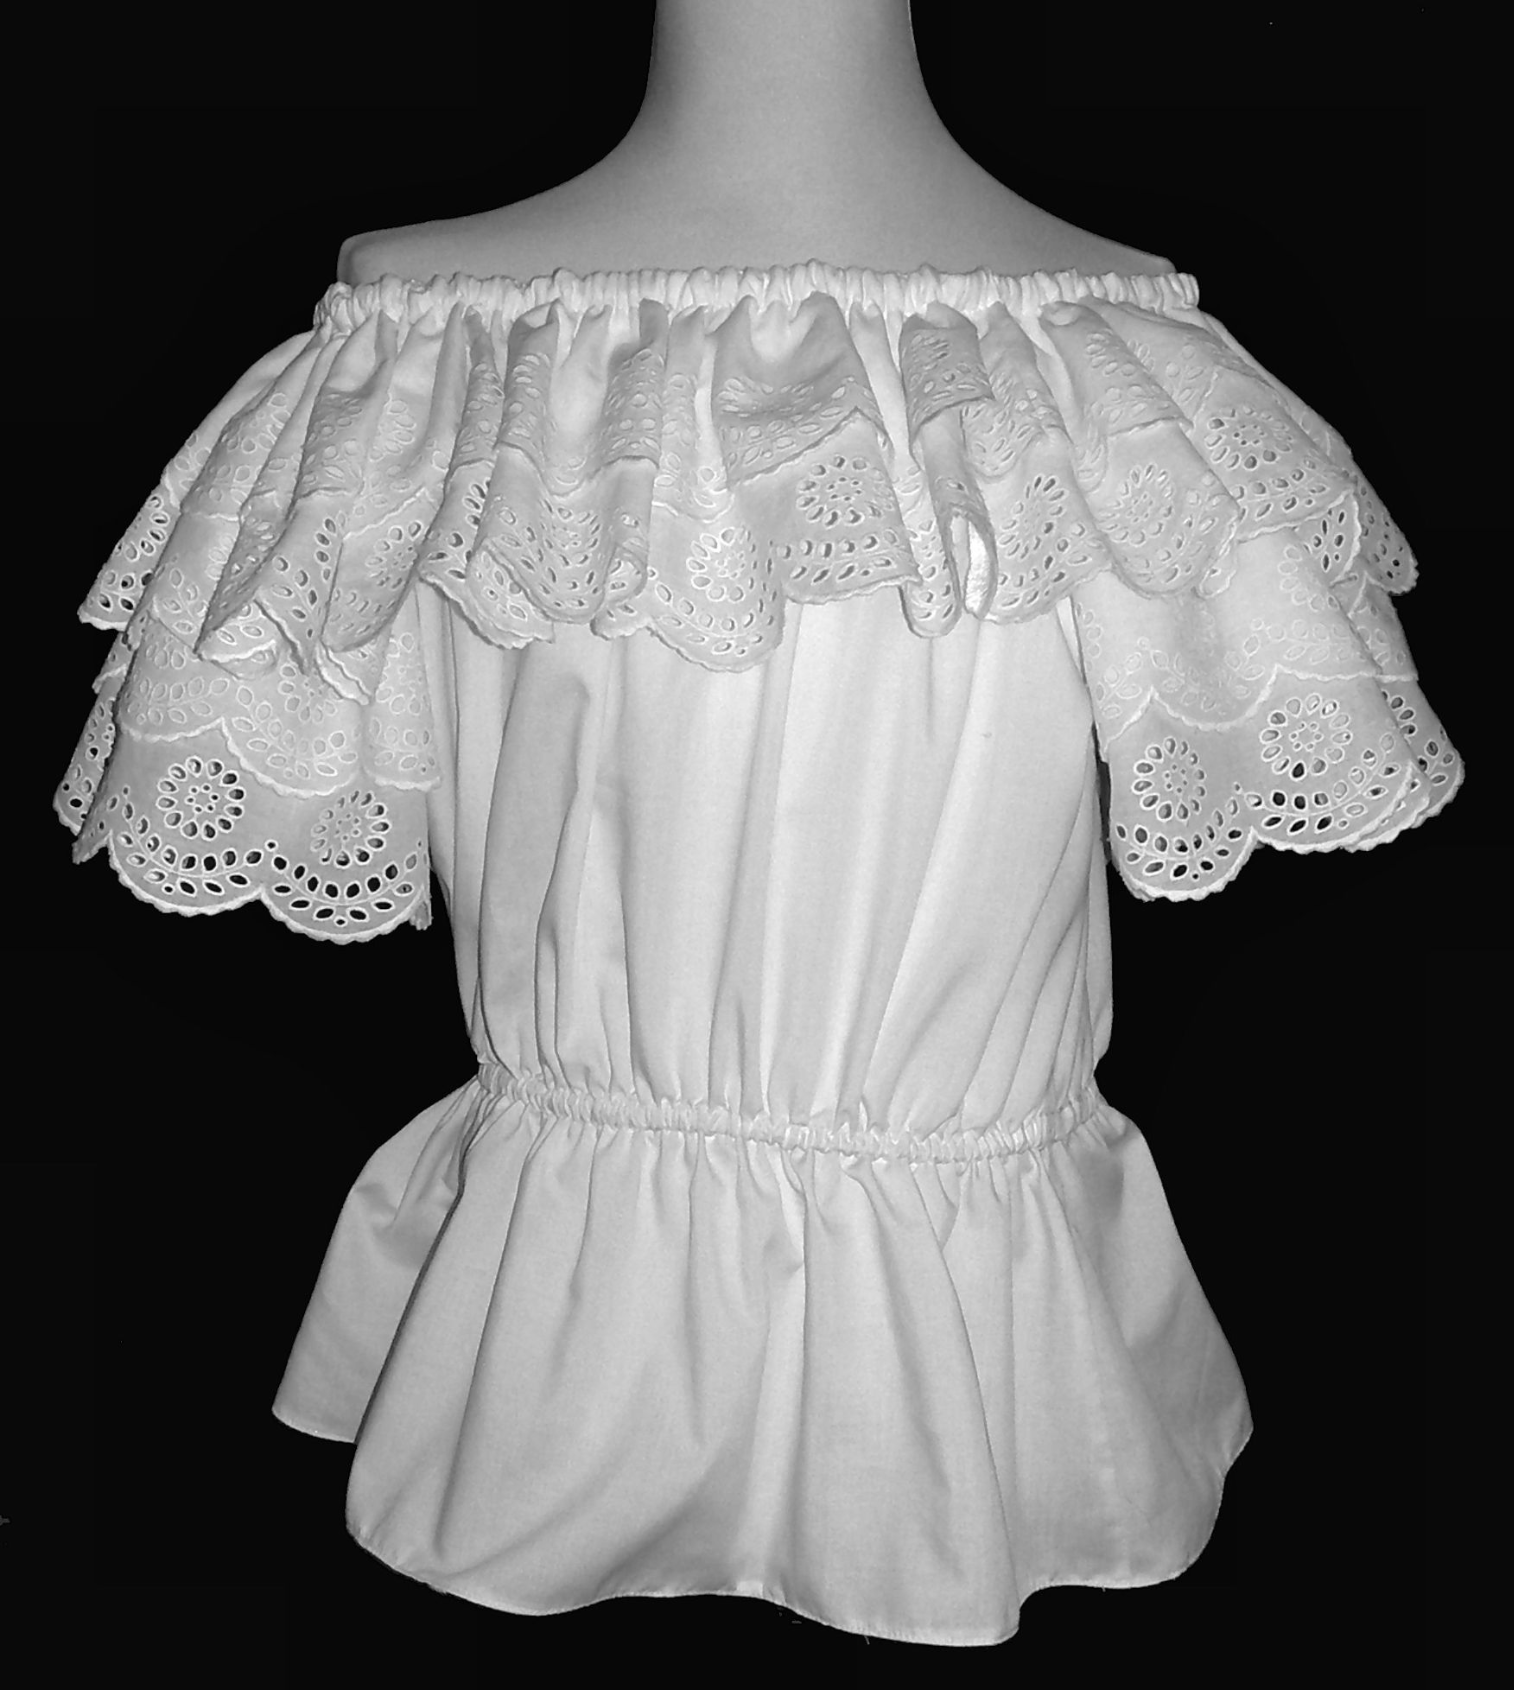 Classic Peasant Blouse with Double Ruffled Eyelet-lace